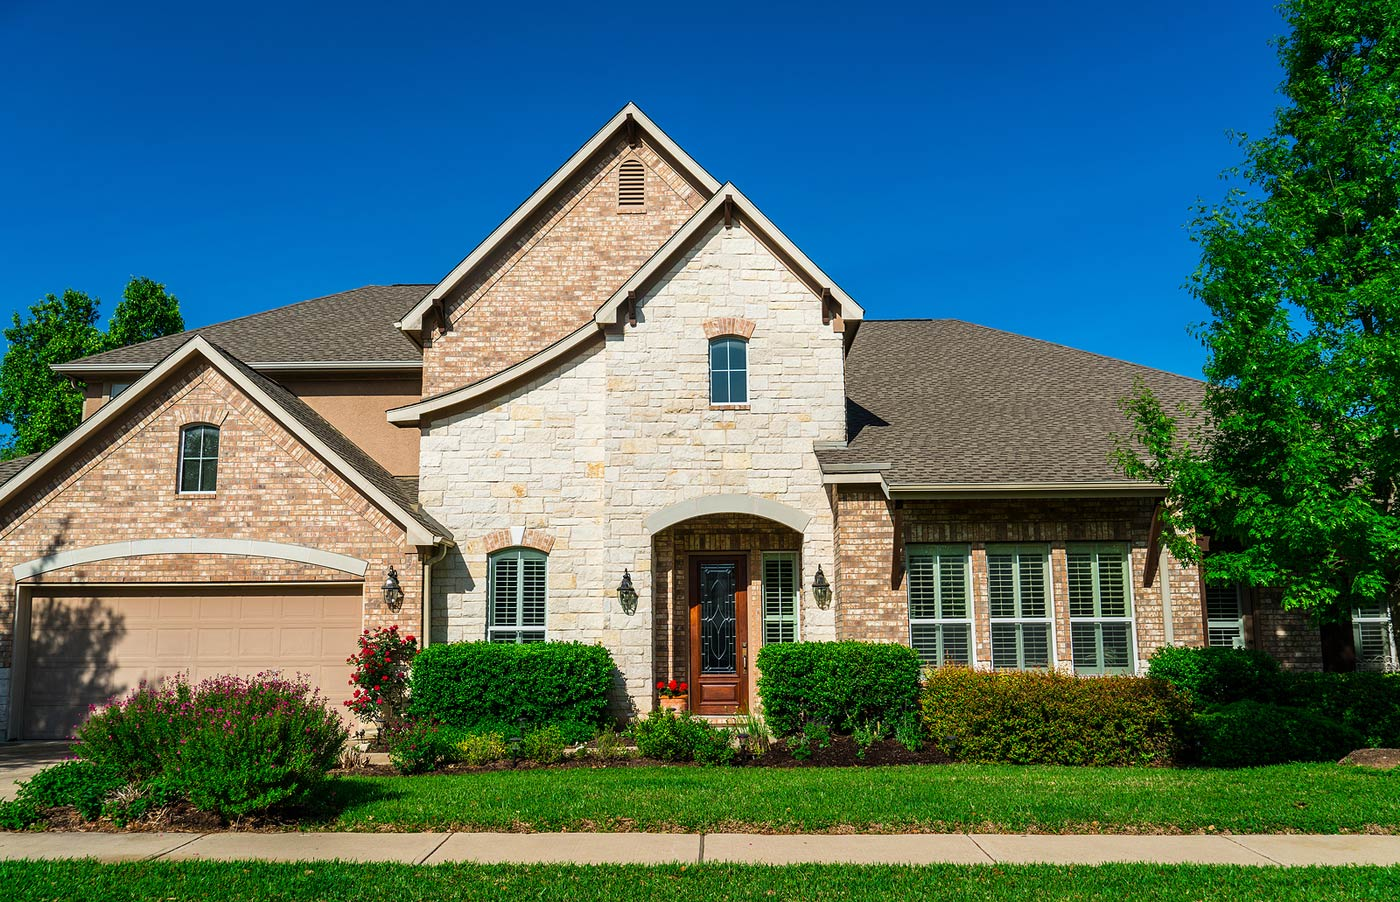 Conroe property management services